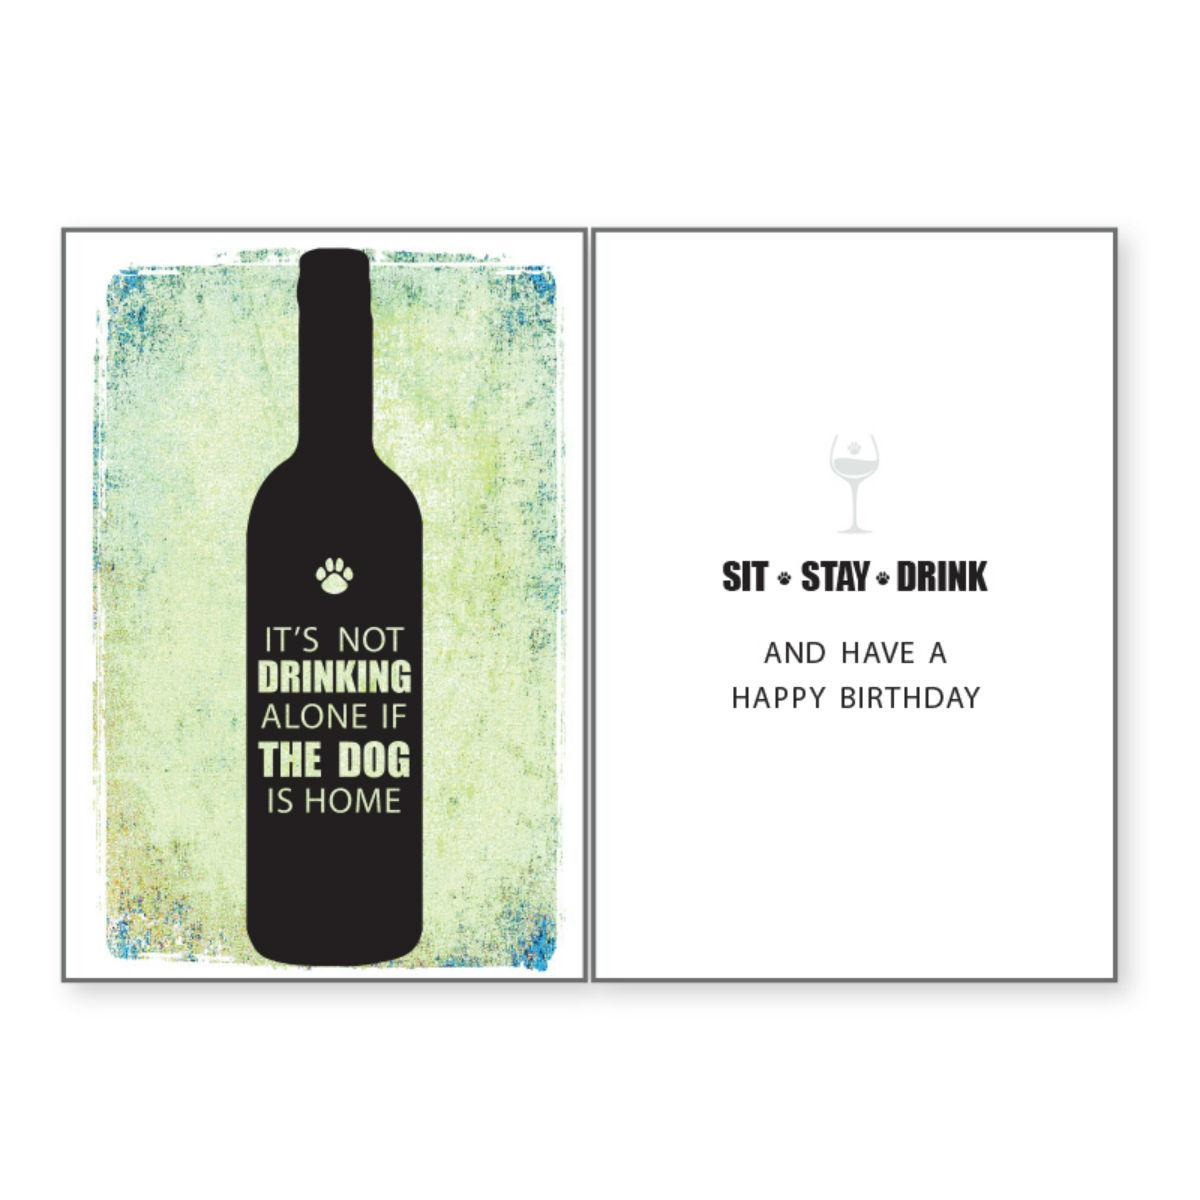 Birthday Greeting Card by Dog Speak - It's not drinking alone if the dog is home...